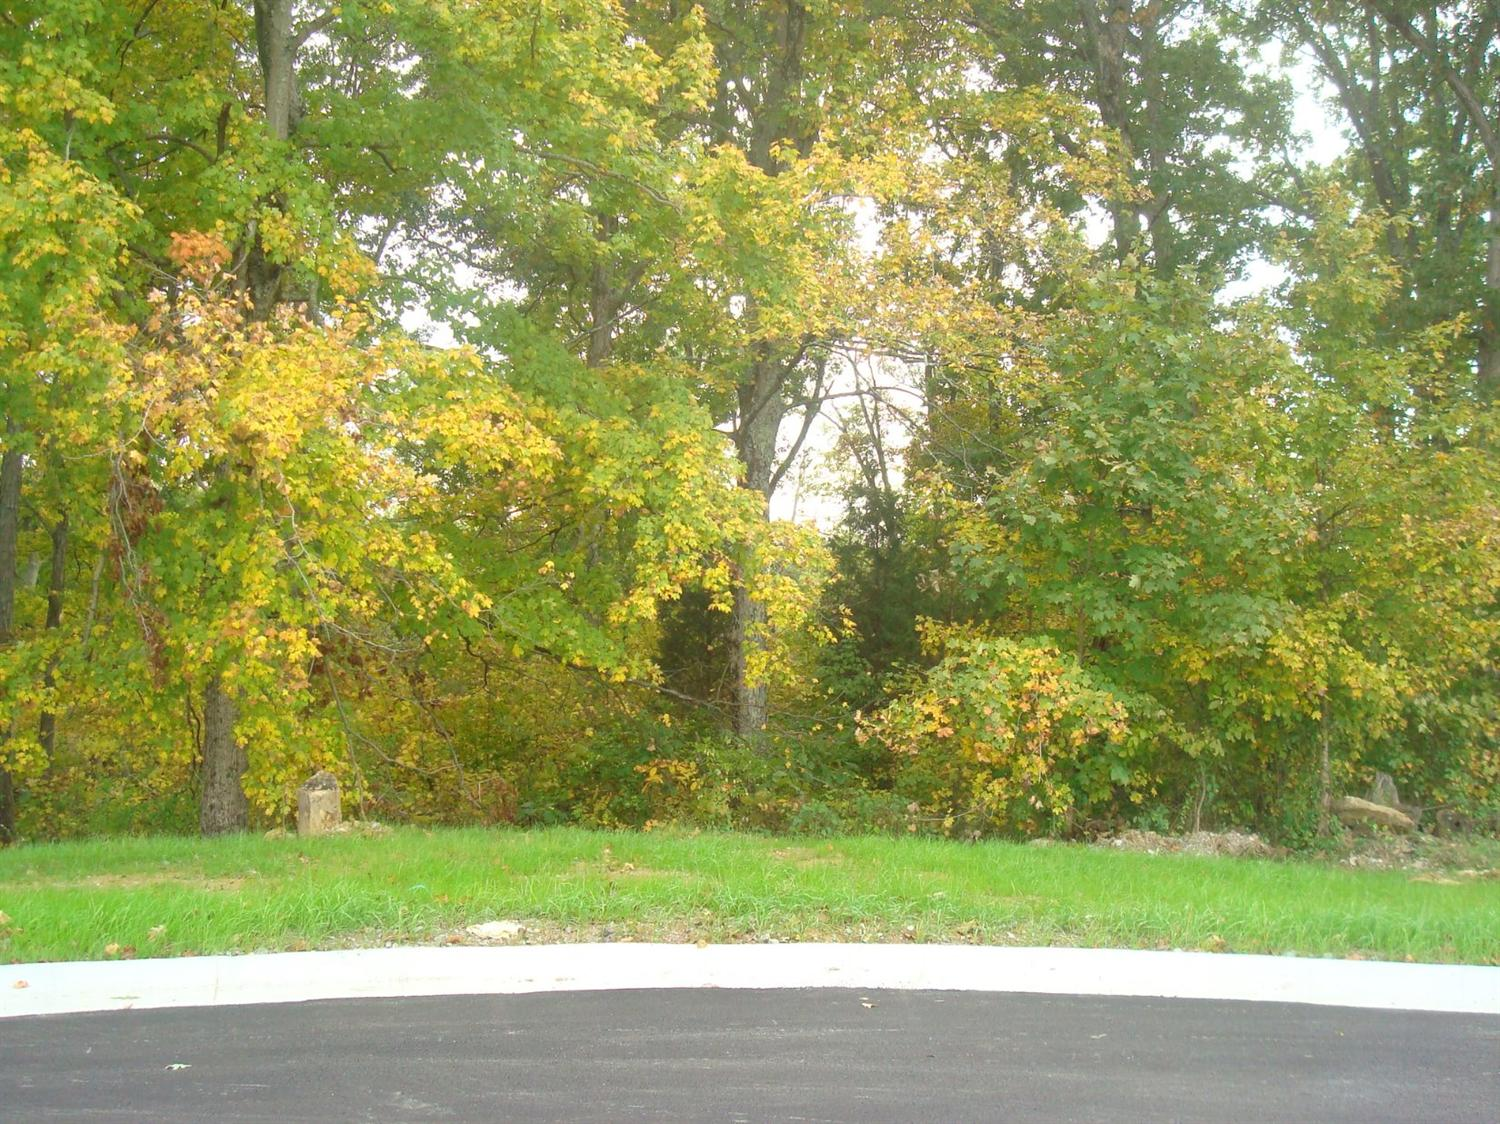 real estate photo 1 for Hannahs Way - Lot 79 Crittenden, KY 41030